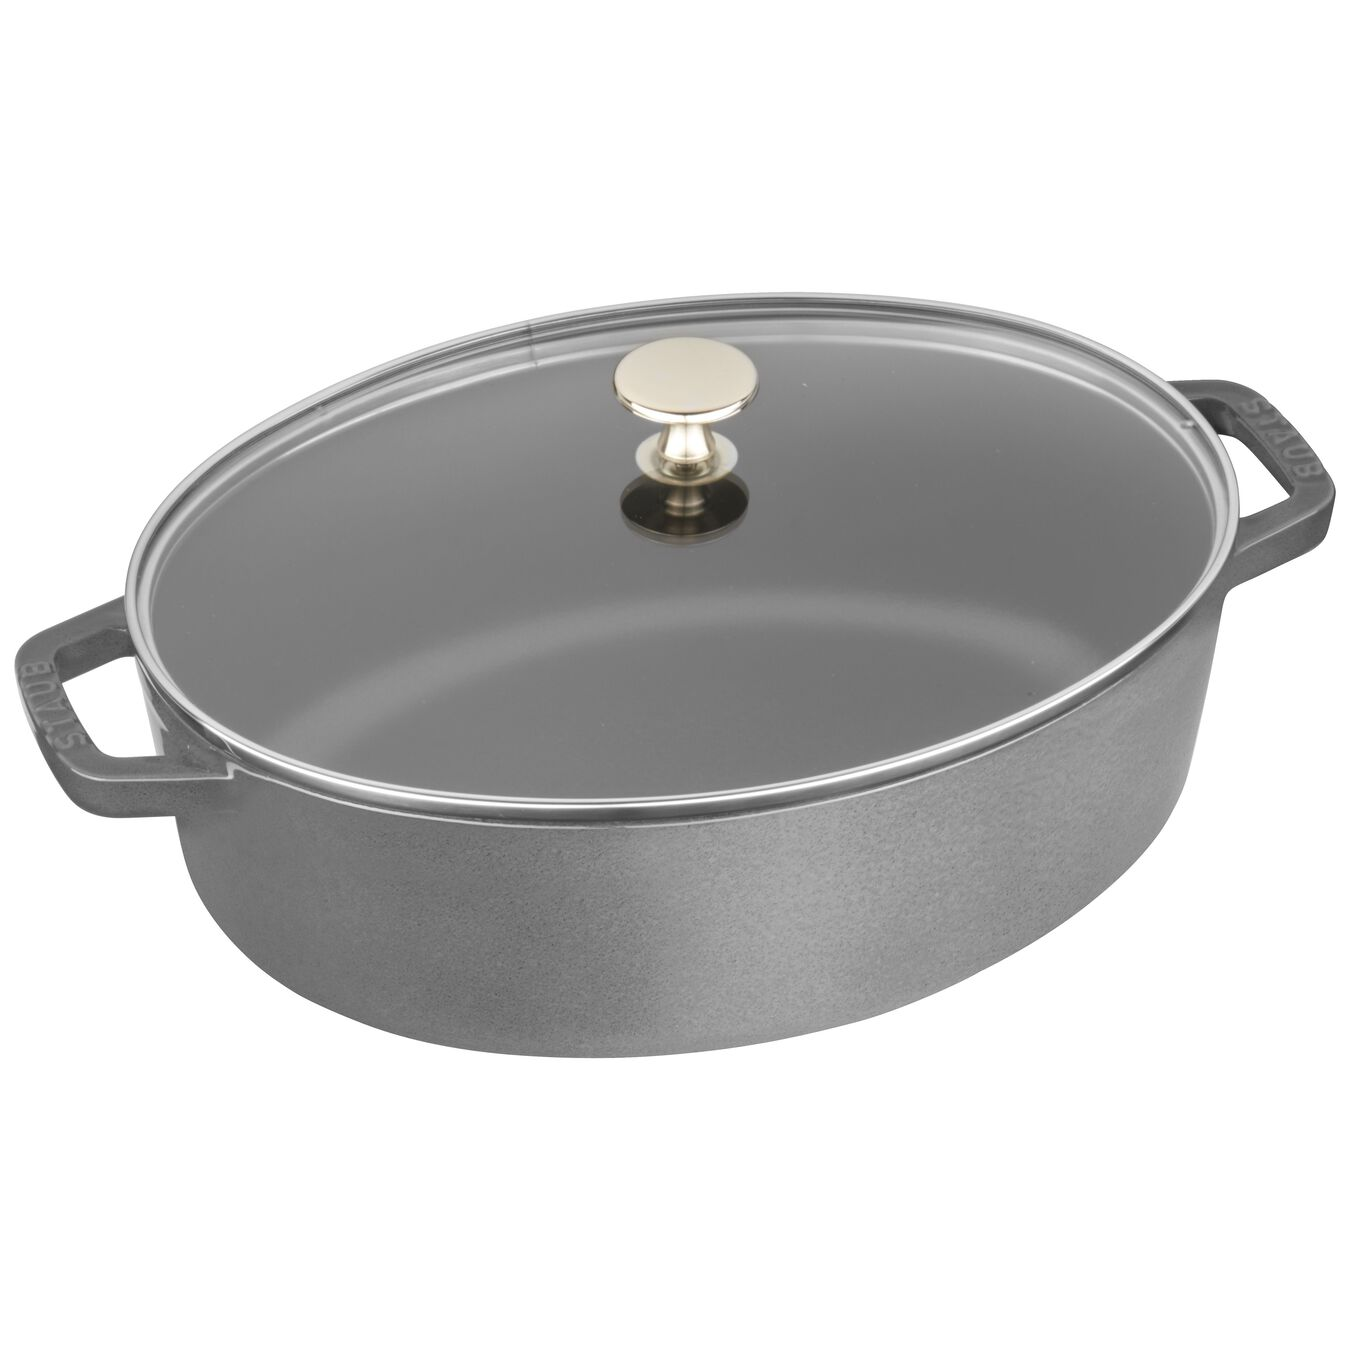 4.25-qt Shallow Wide Oval Cocotte with Glass Lid - Graphite Grey,,large 2